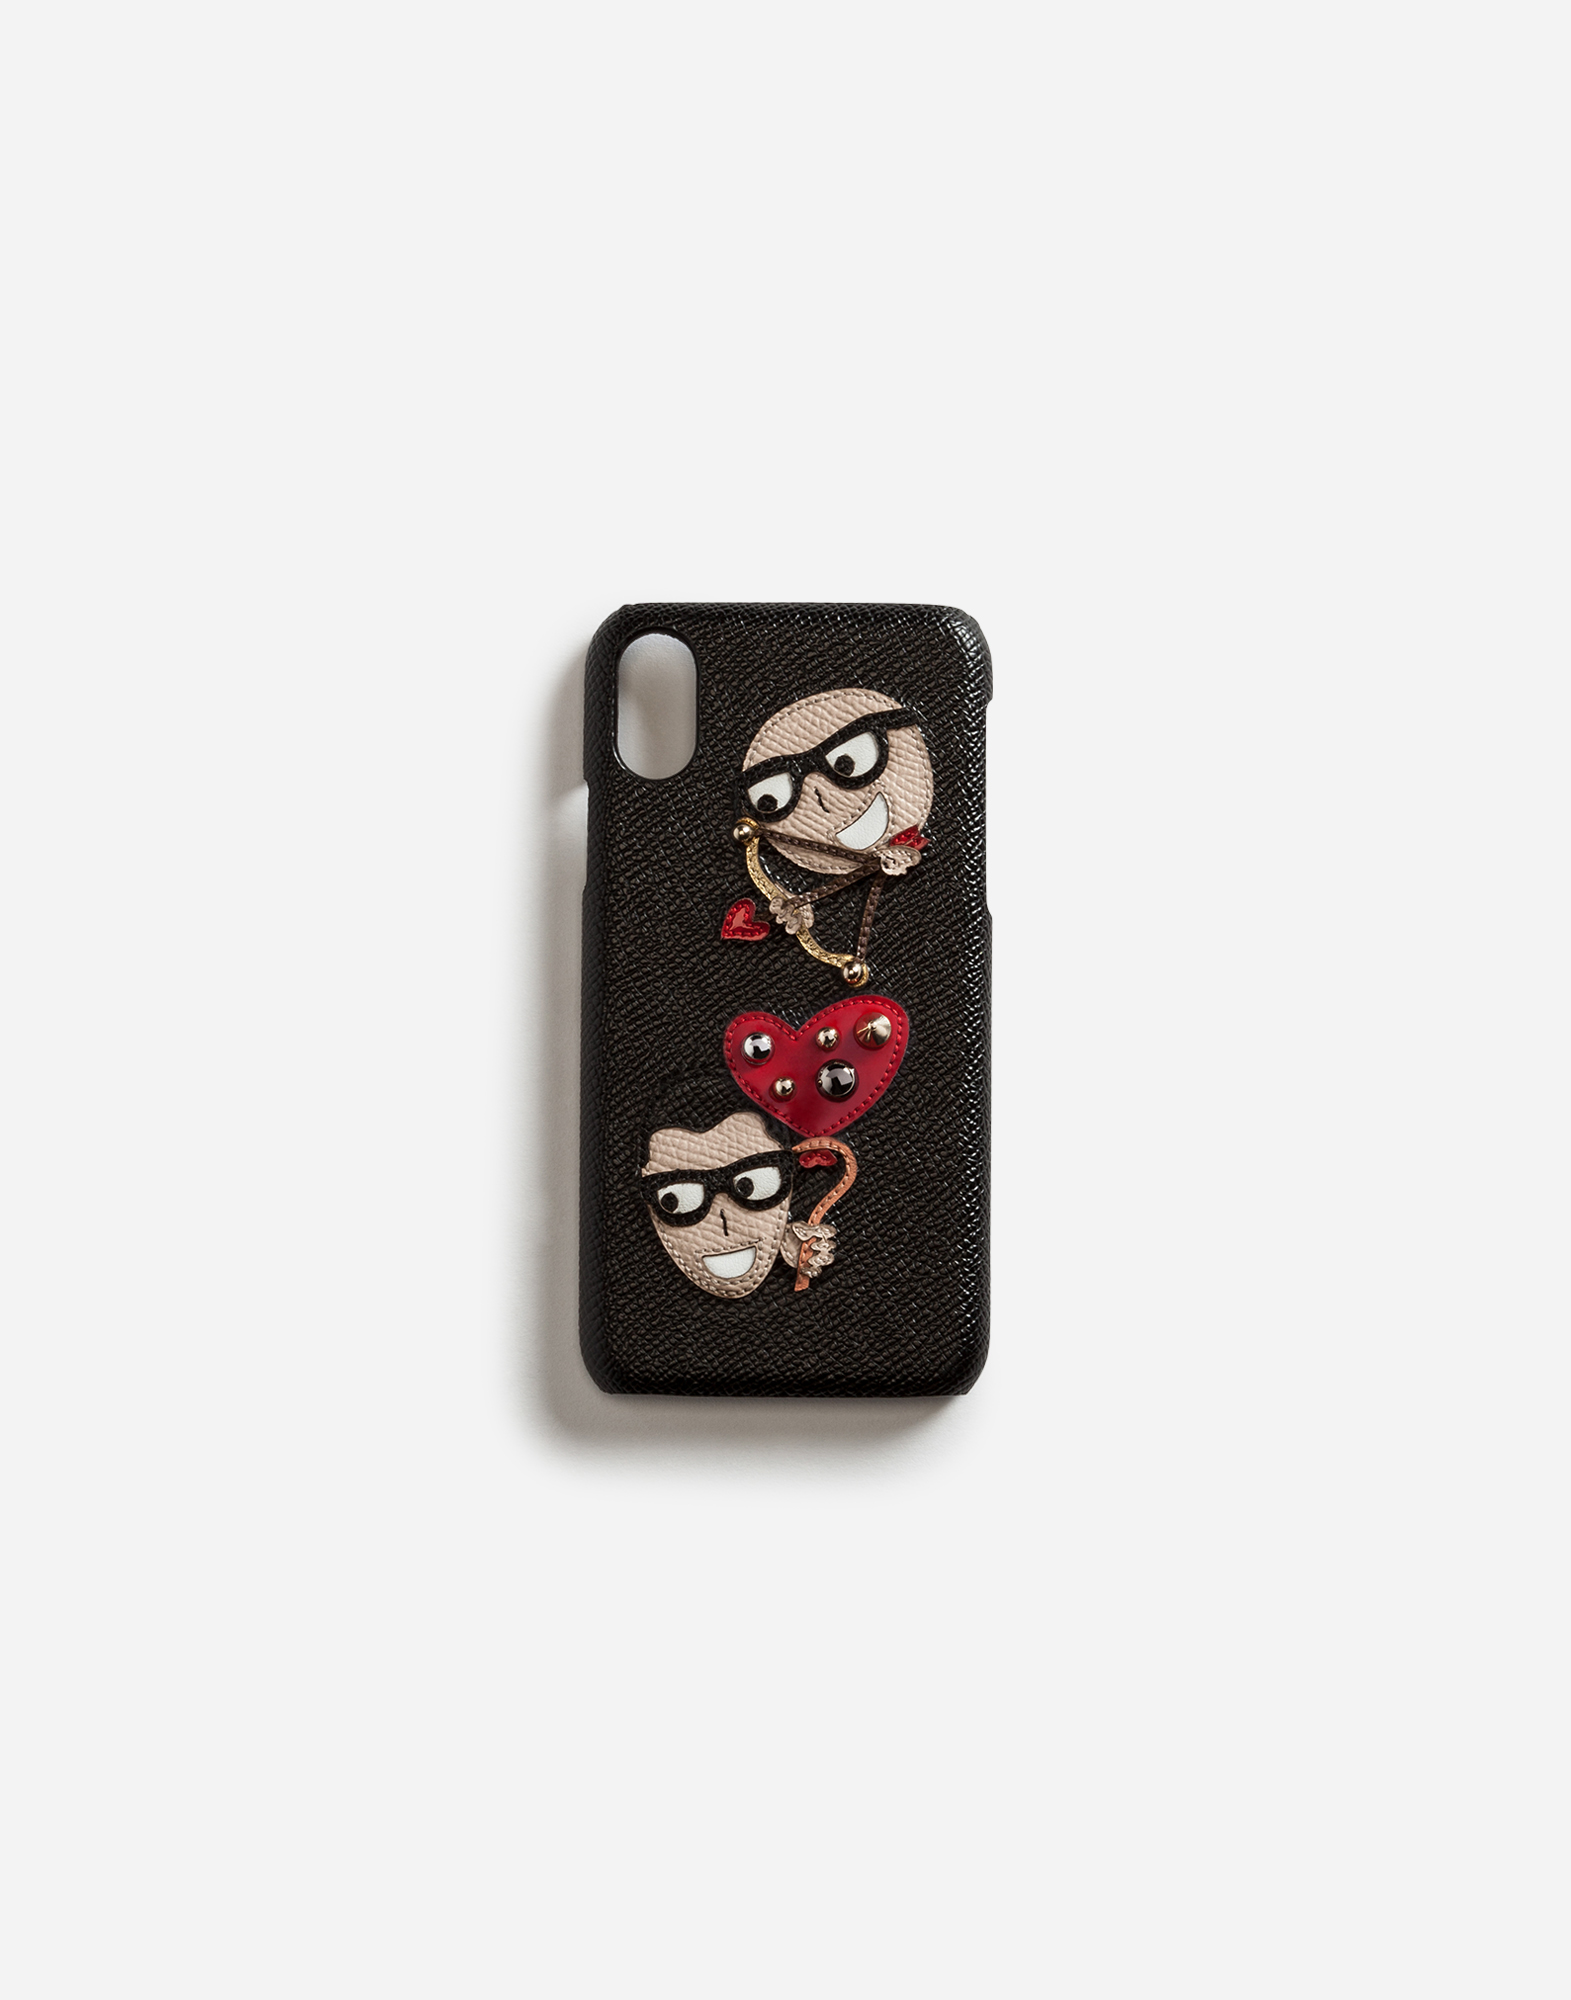 Dolce&Gabbana IPHONE X COVER IN DAUPHINE CALFSKIN WITH PATCHES OF THE DESIGNERS